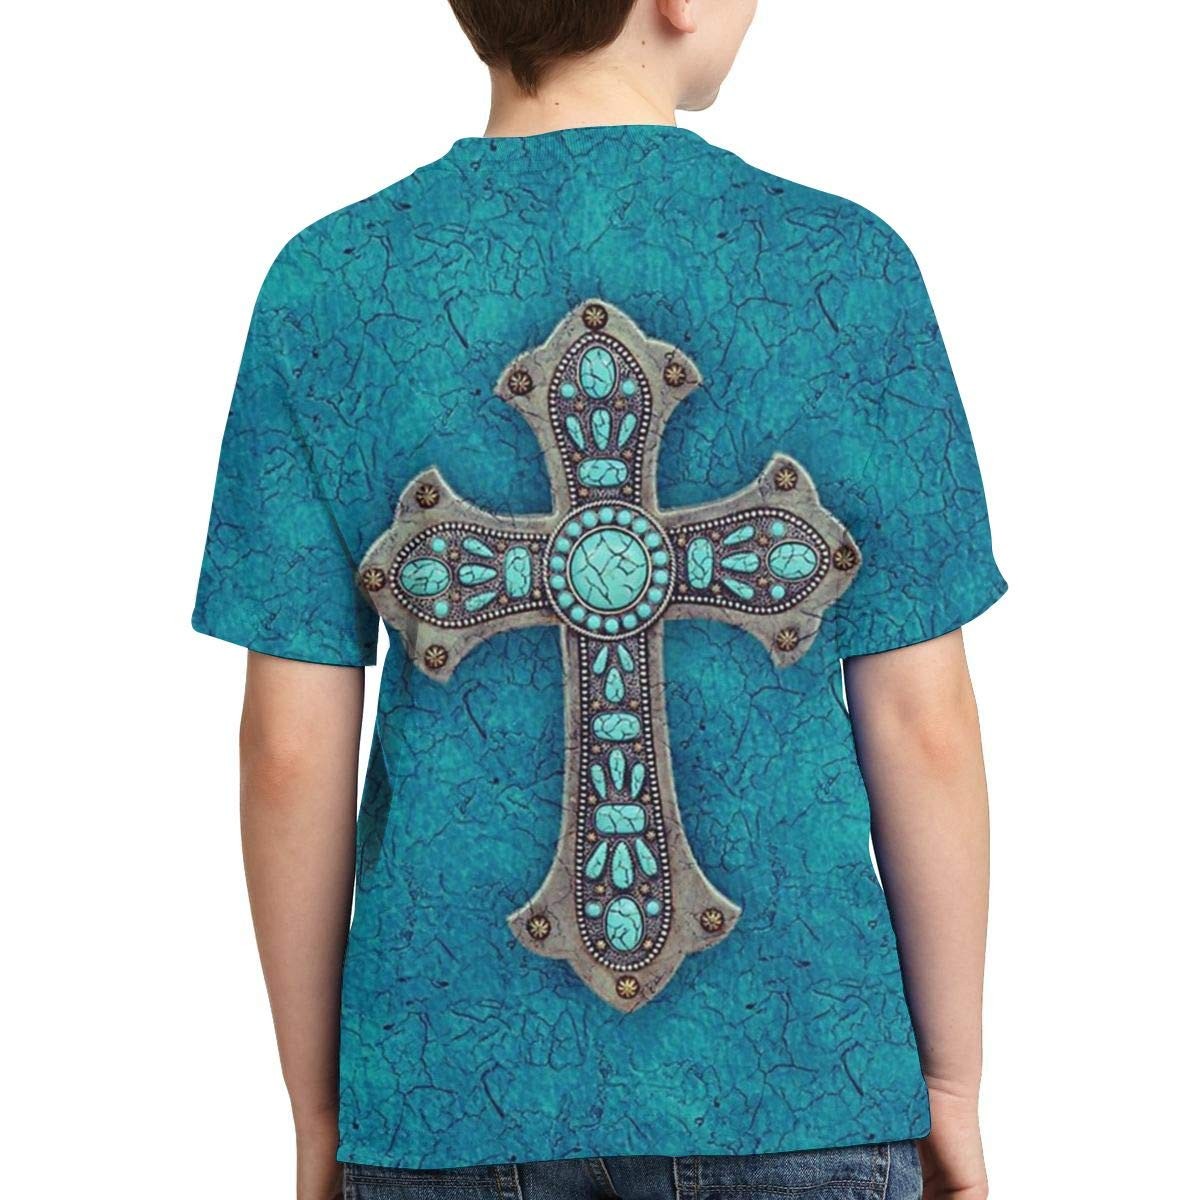 Boys Short Sleeve Turquoise Rustic Cross American Country Style 3D Printed T-Shirts Summer Cool Youth Kids Tees